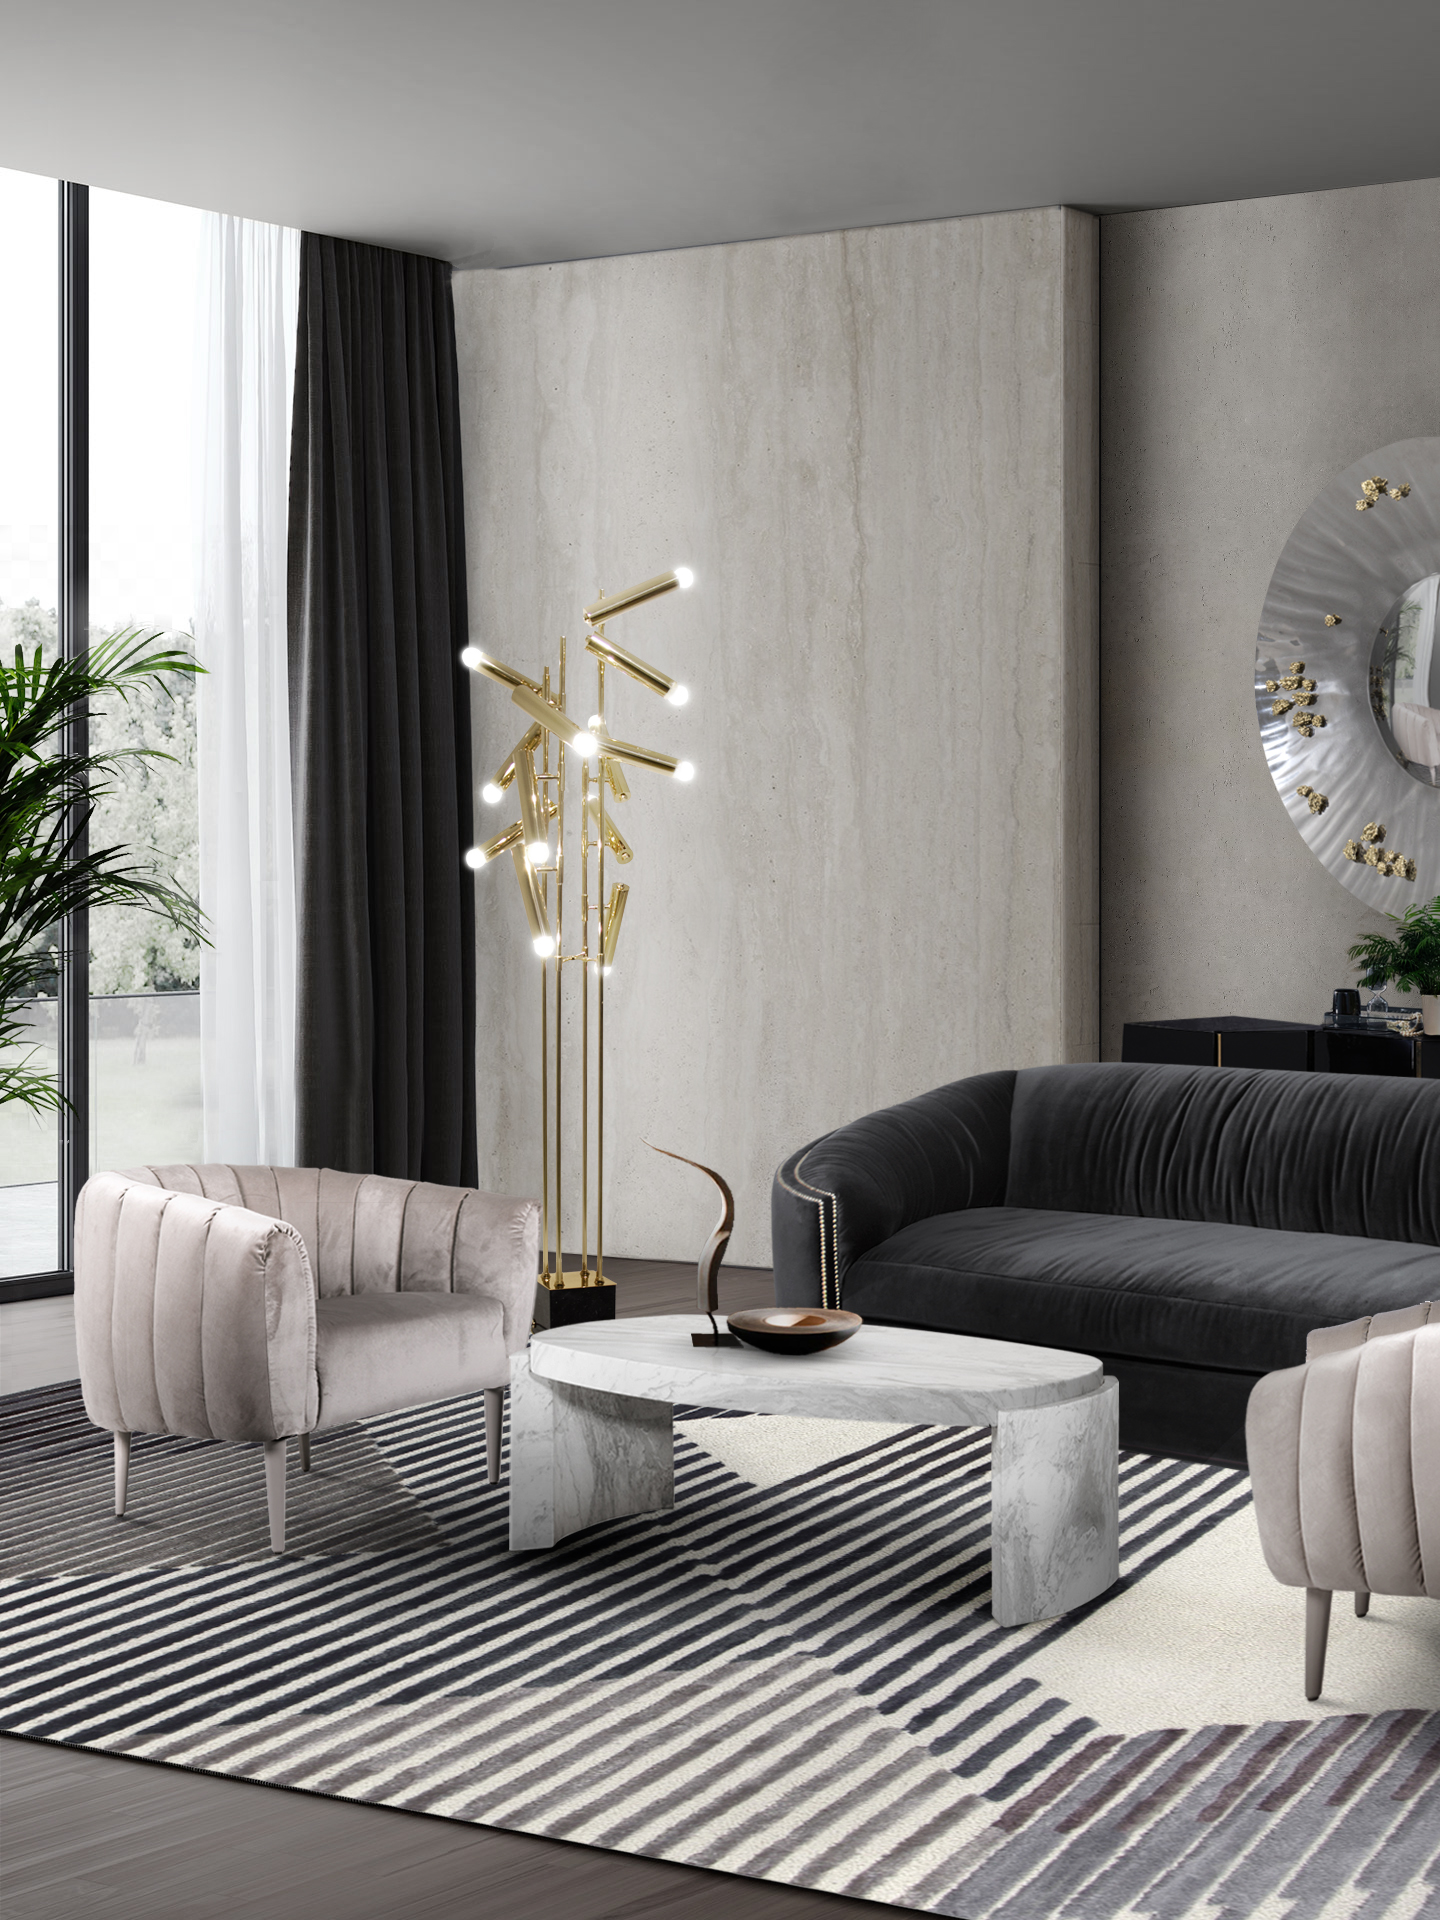 2020 interior design trends 2020 Interior Design Trends: Enter 2020 with Sophistication 2020 Interior Design Trends Enter 2020 with Sophistication 1